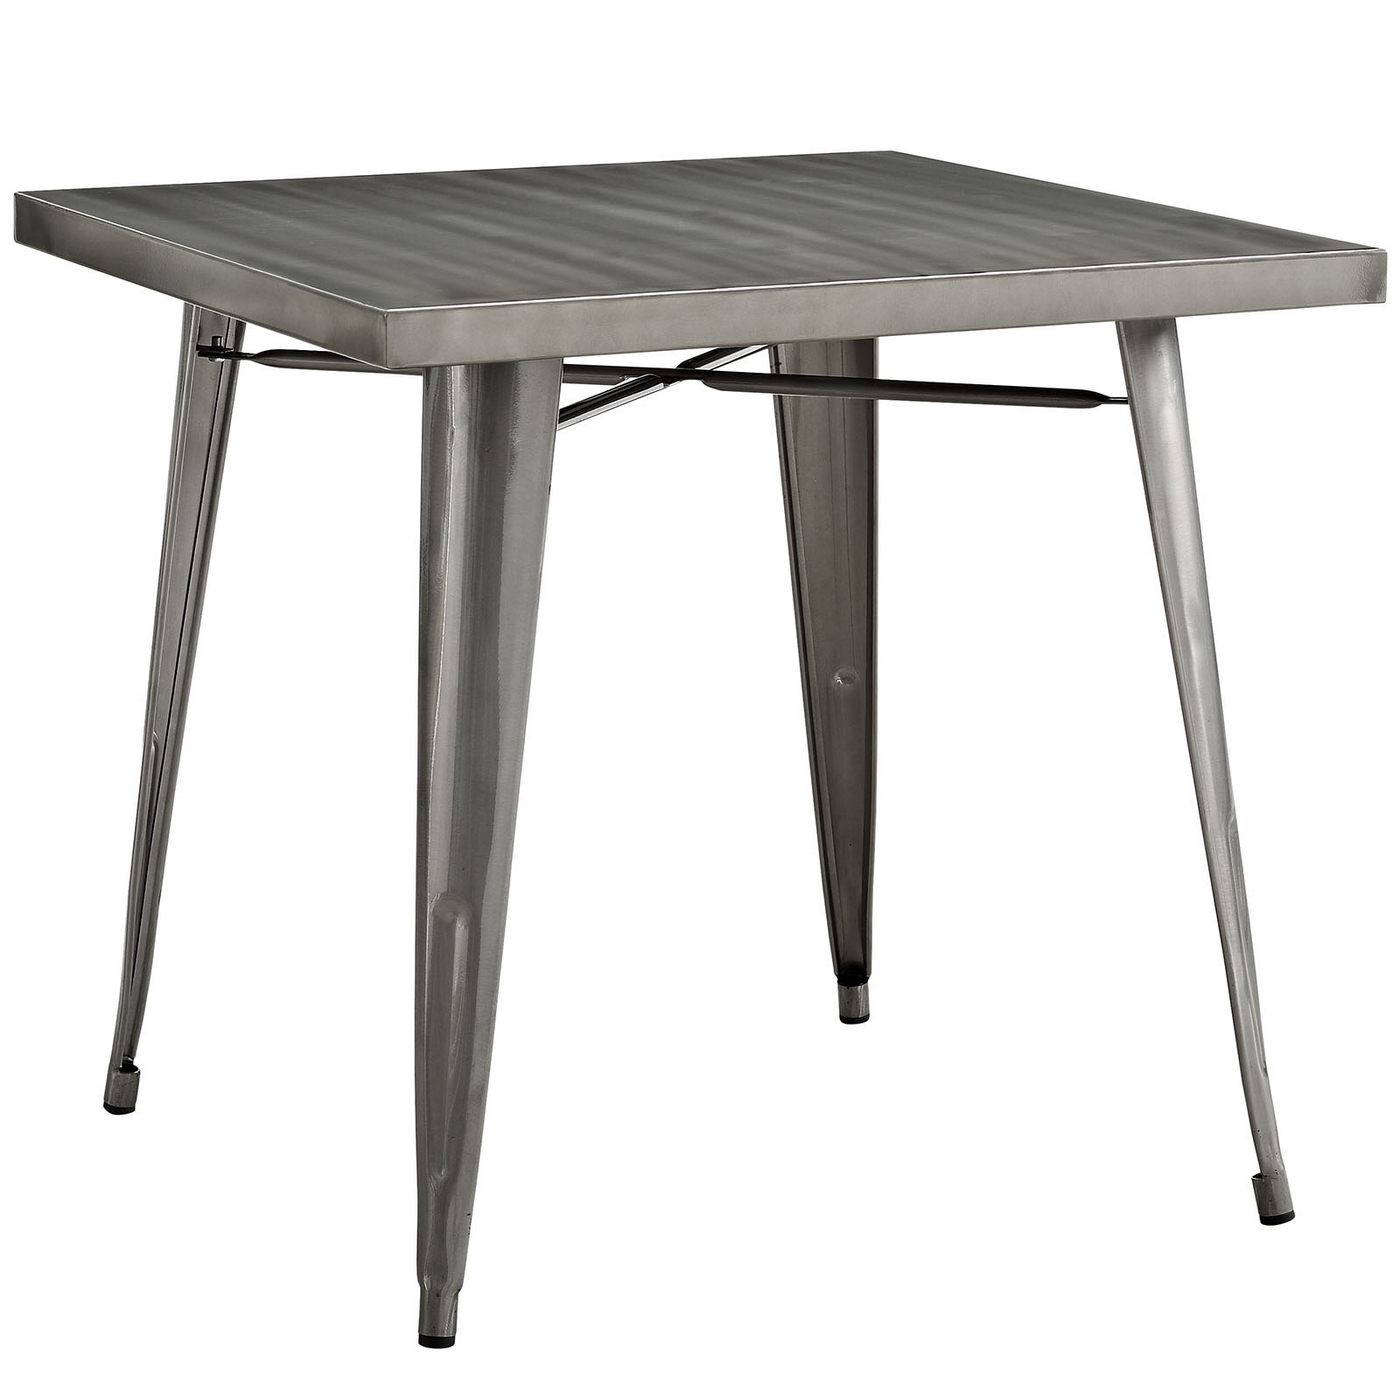 Alacrity modern industrial 32 steel square dining table for Square industrial dining table